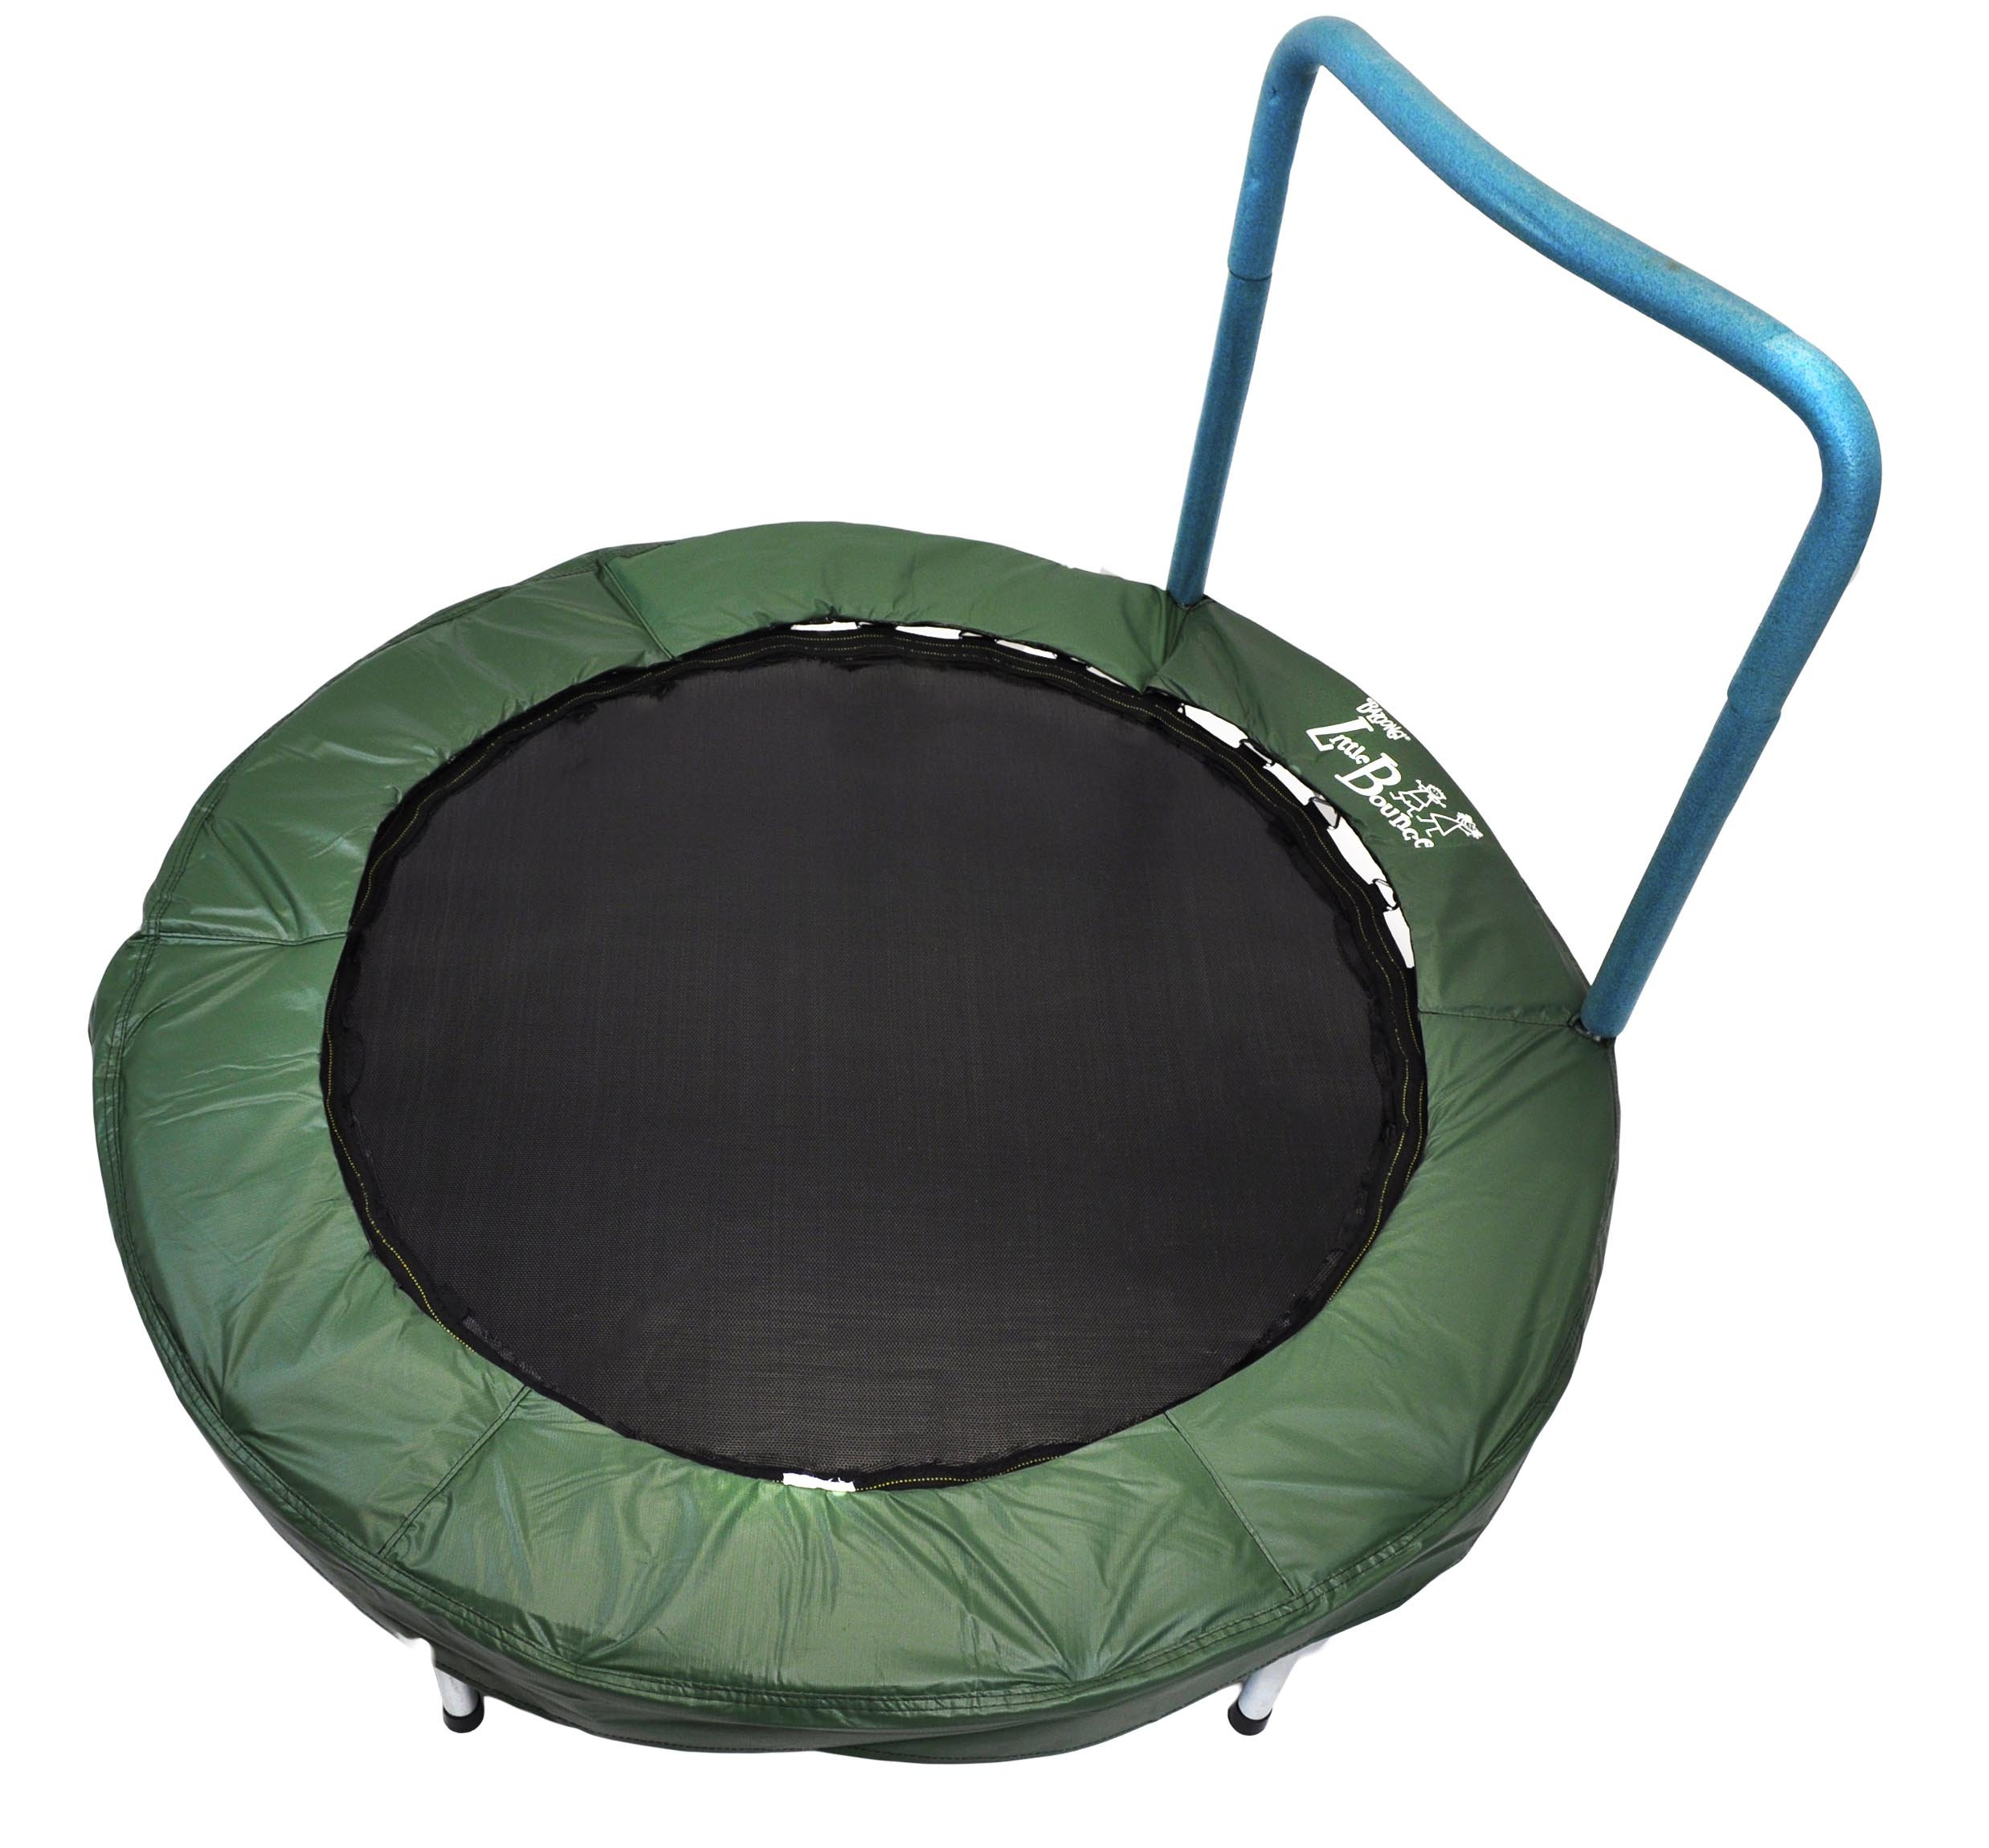 my first trampoline